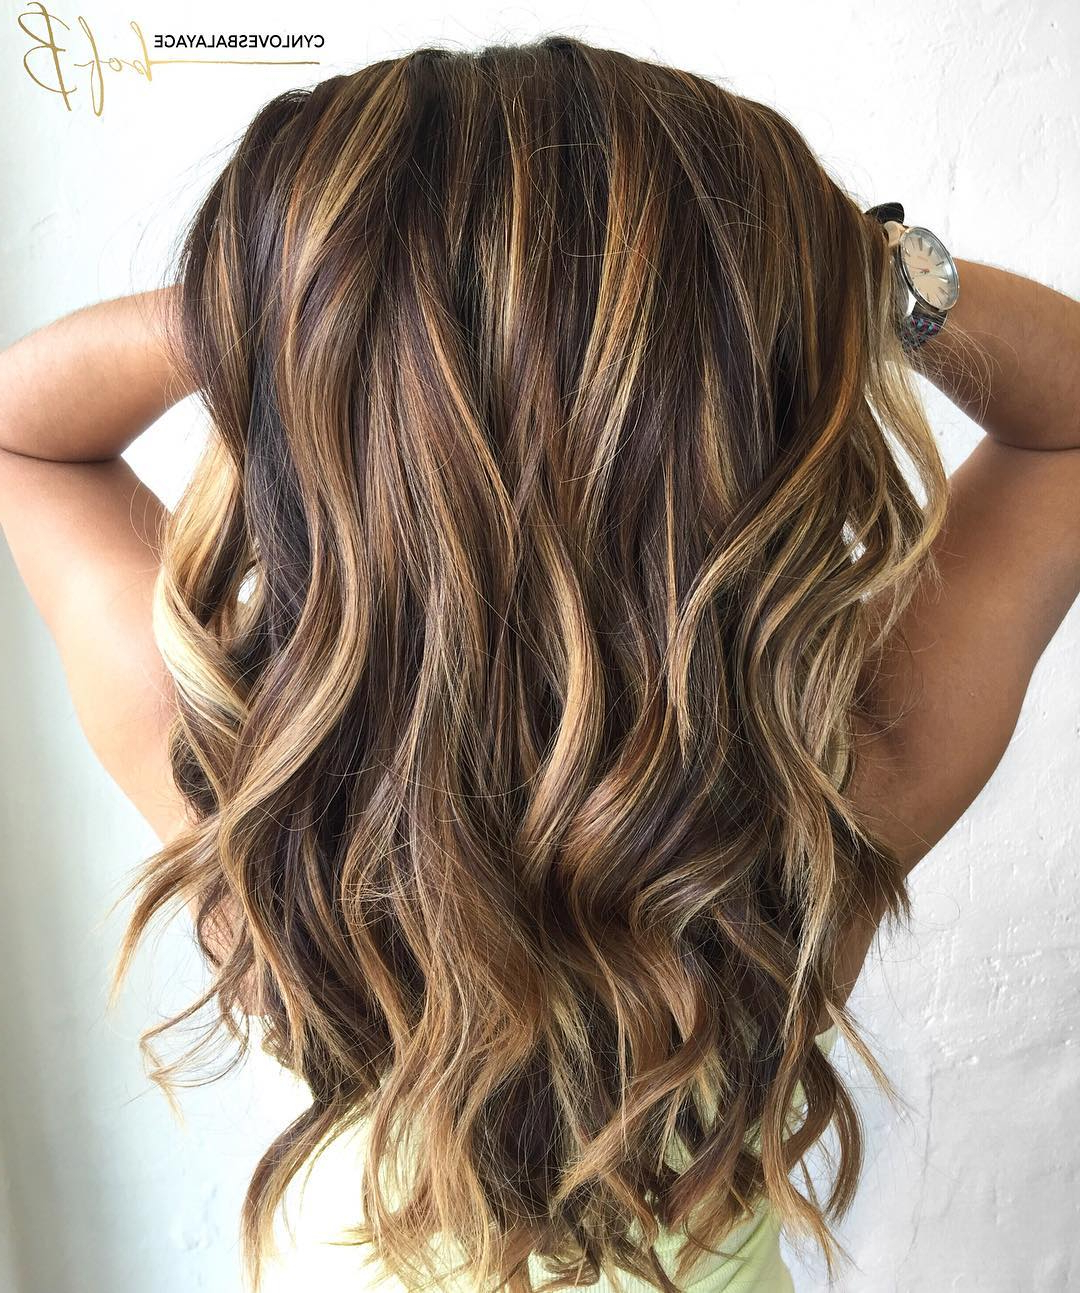 Trendy Black To Light Brown Ombre Waves Hairstyles Regarding 60 Looks With Caramel Highlights On Brown And Dark Brown Hair (View 13 of 20)